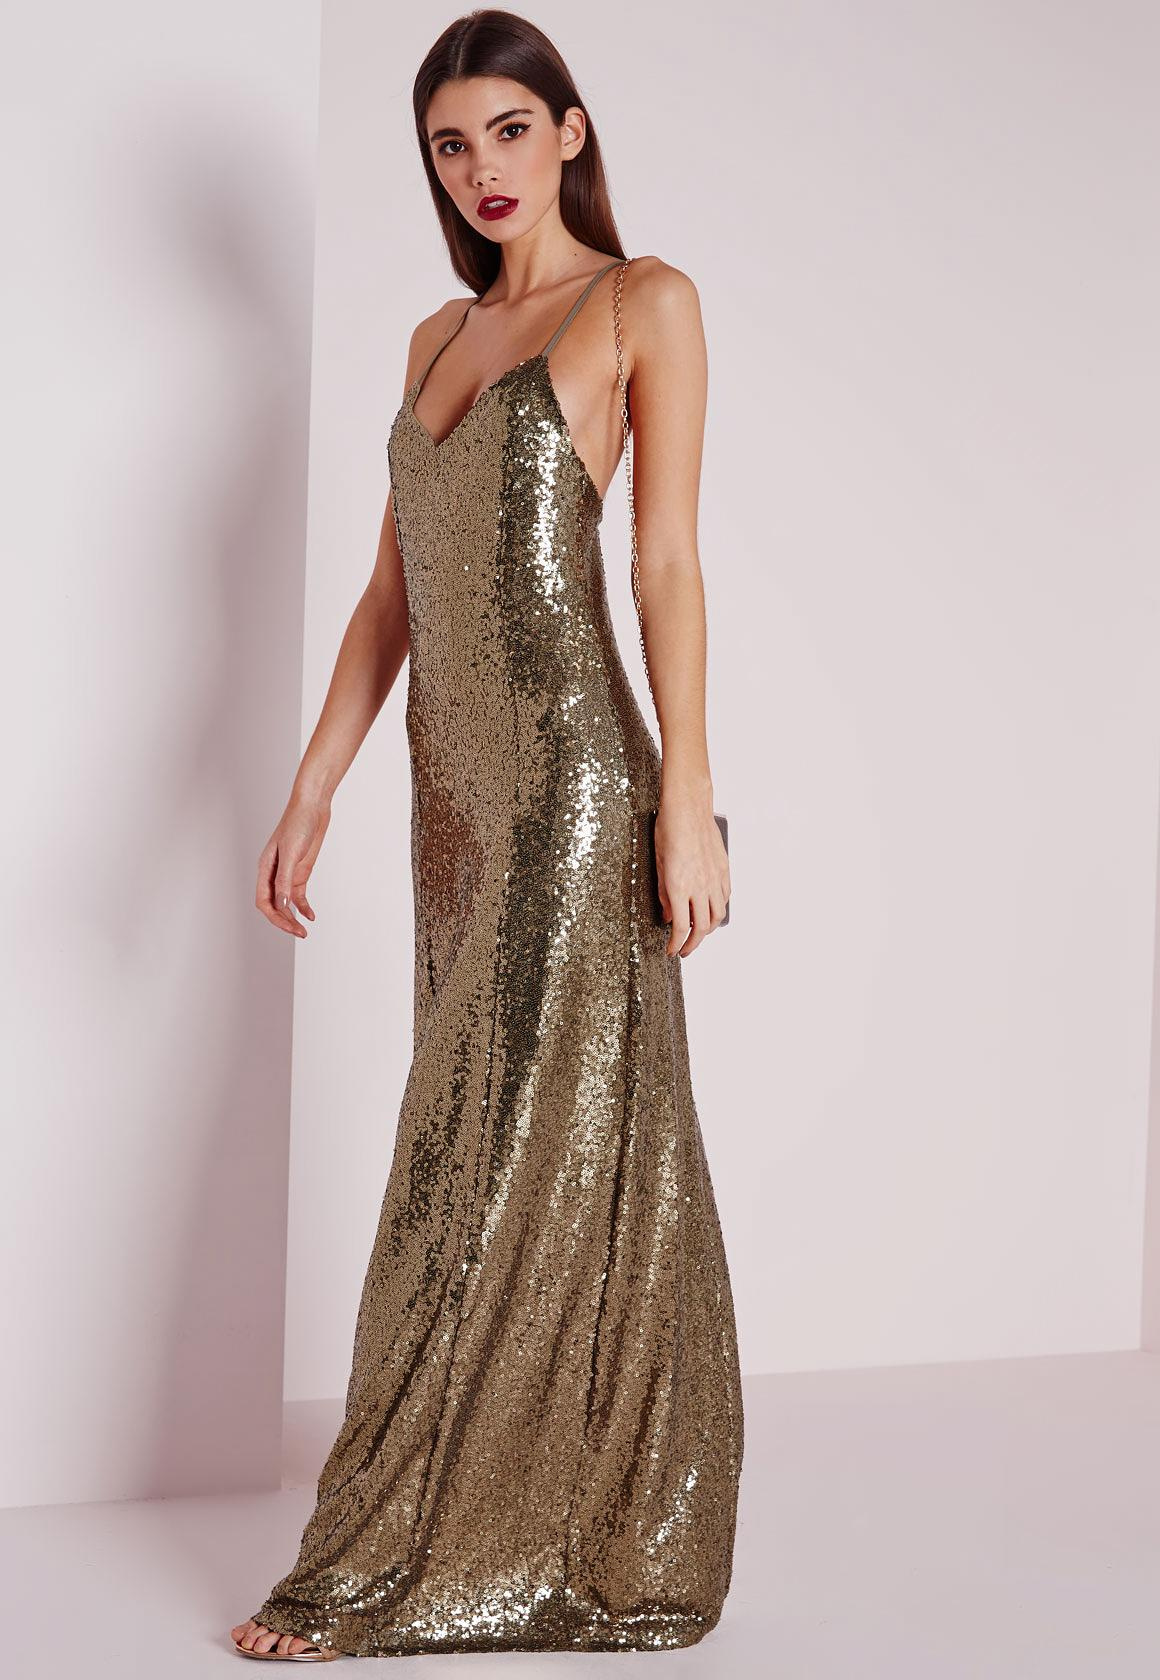 Features of a sequin maxi dress